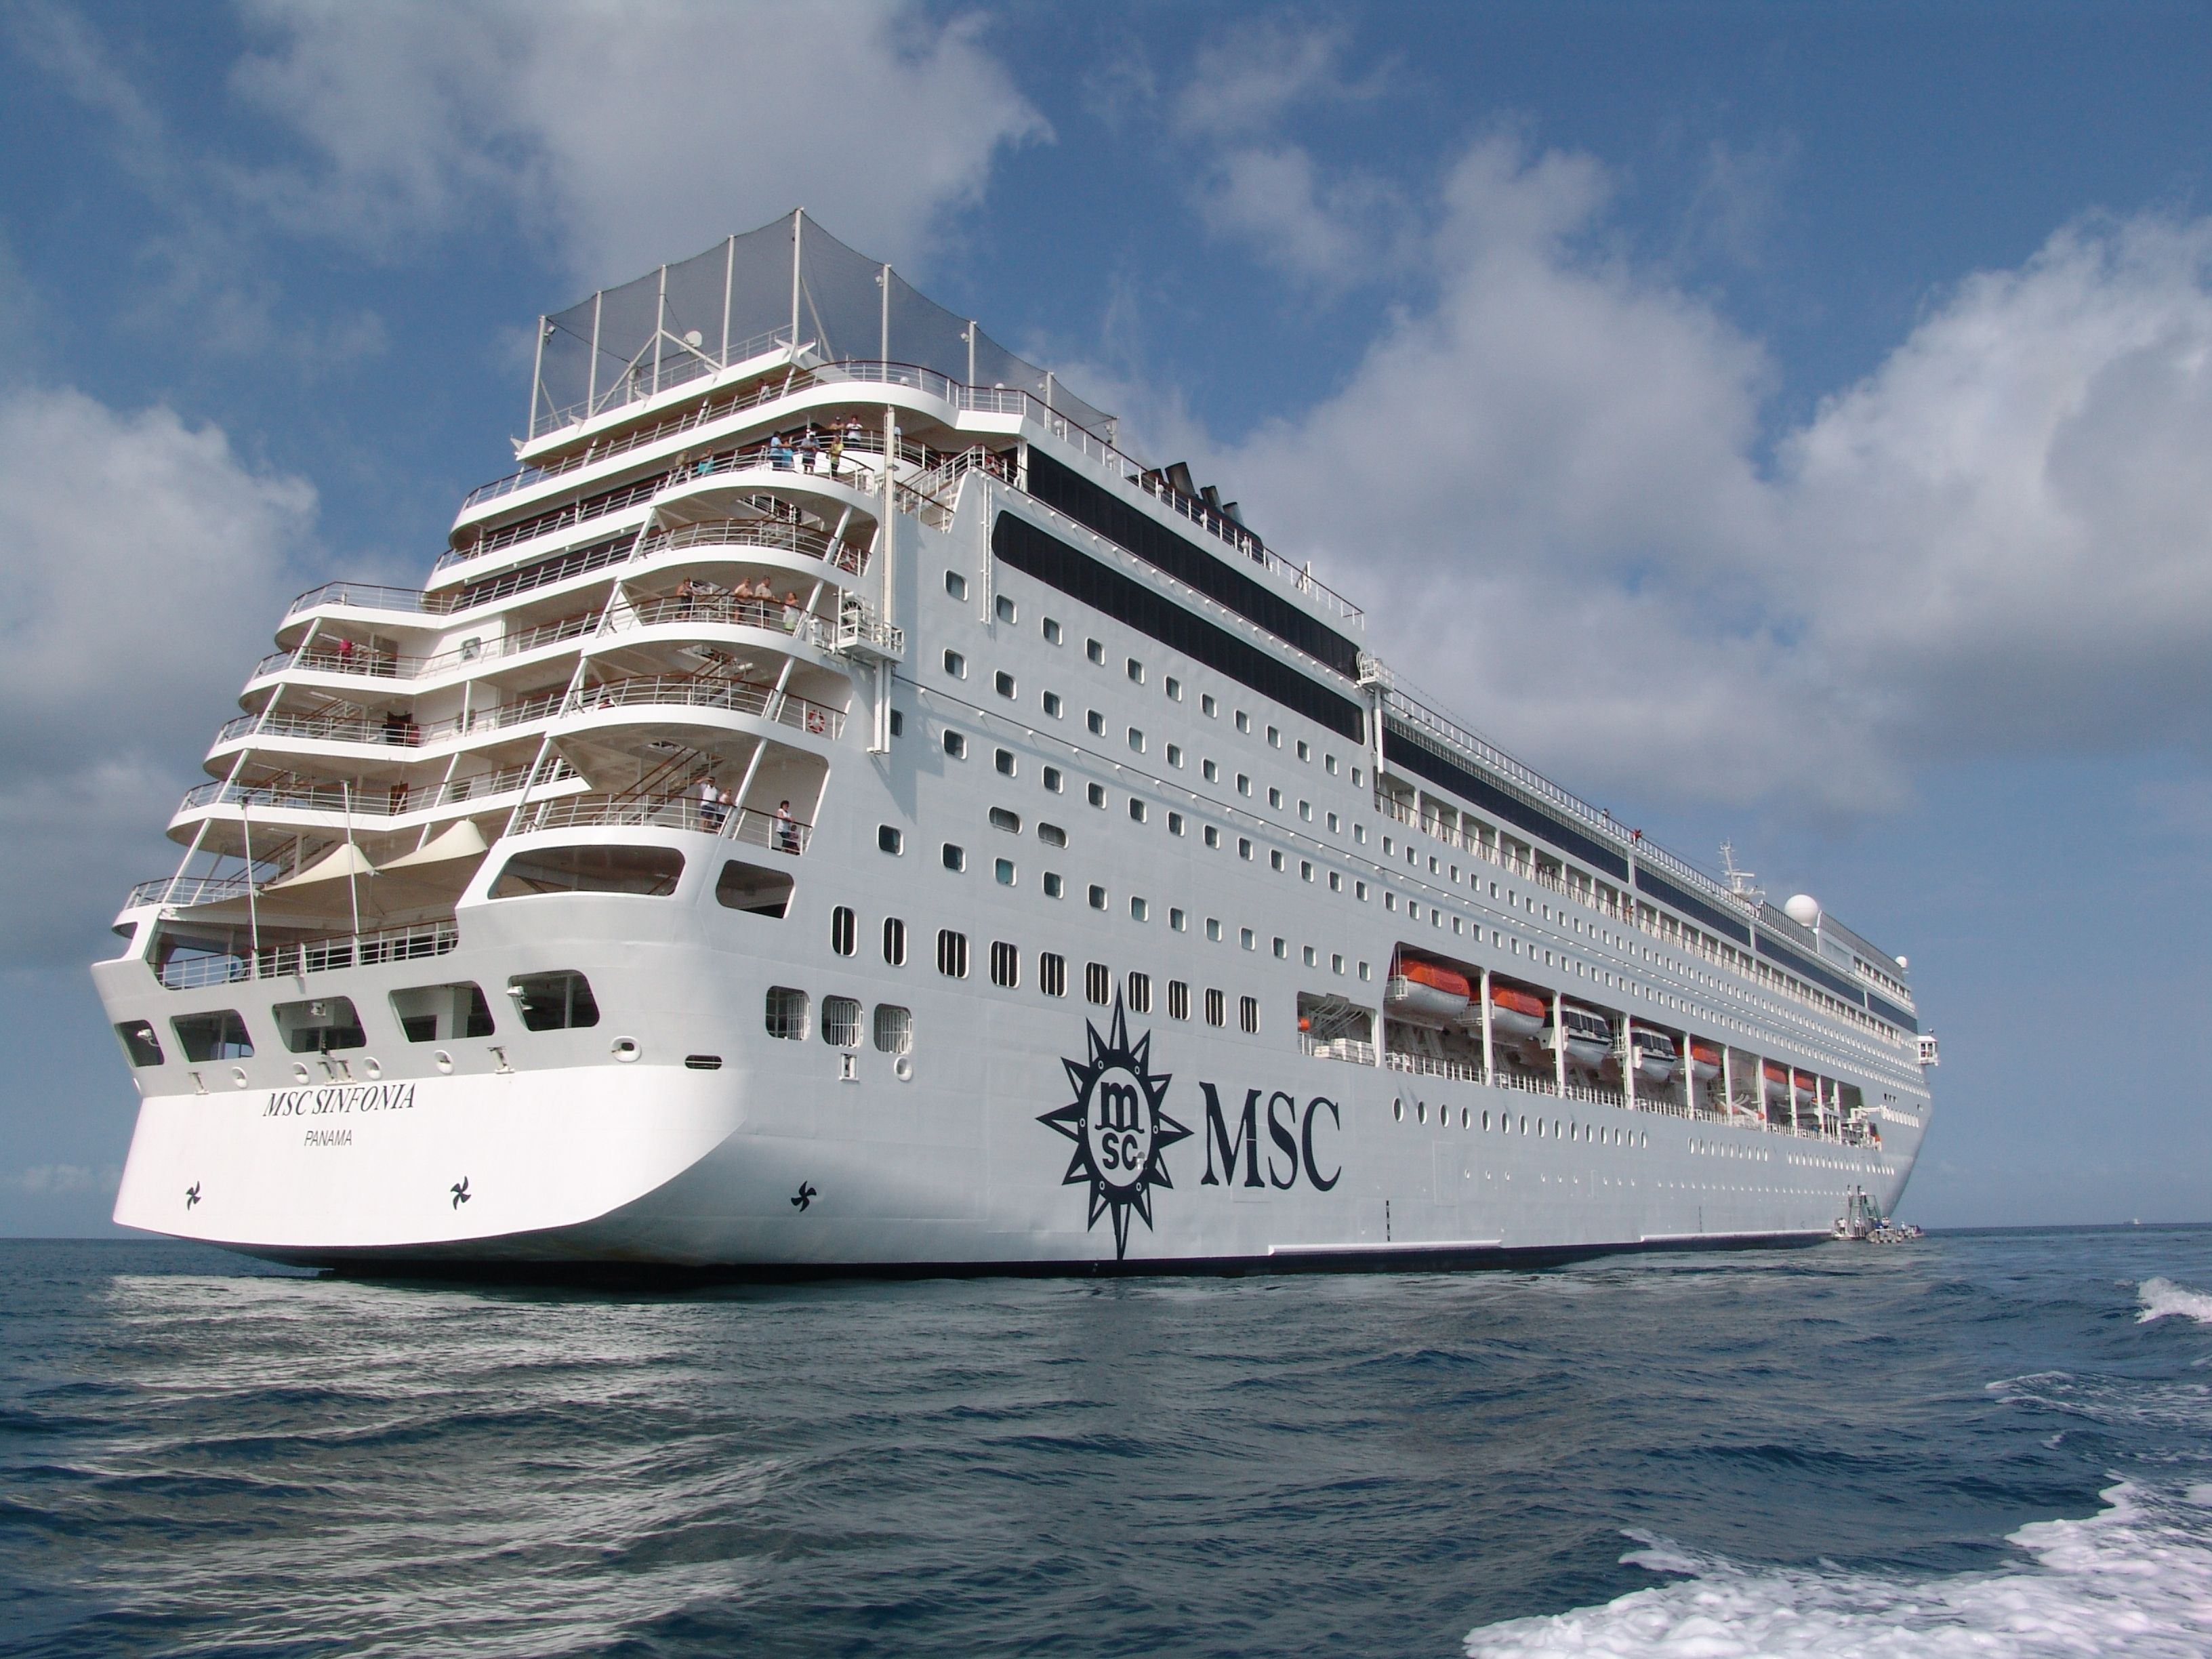 Cruise Specials From South Africa - Cruise ship packages south africa